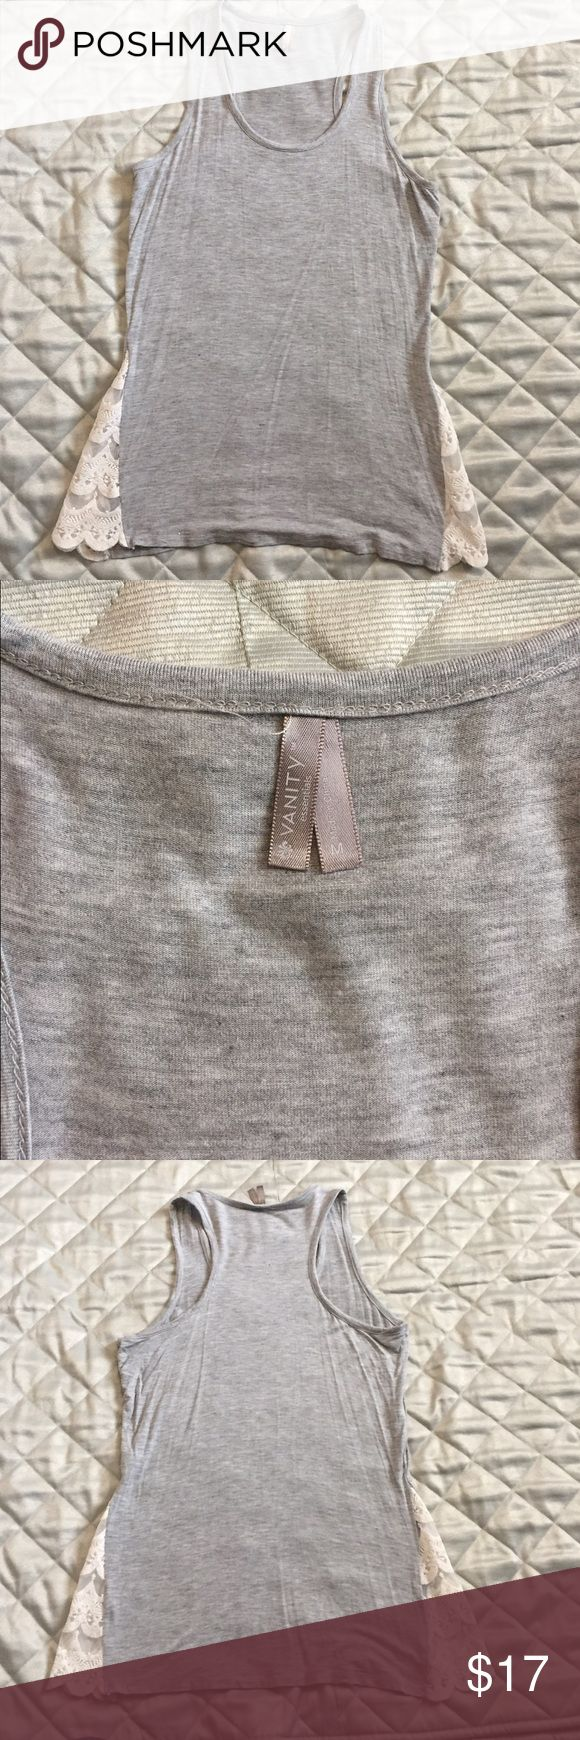 NWOT Vanity Razorback Tank NWOT Vanity razorback gray tee with cream lace on the side bottoms as pictured.  This comes past your hips. Very soft.  95% Rayon and 5% Spandex is the gray part and 80% cotton and 20% polyester for the trim. Vanity Tops Tank Tops